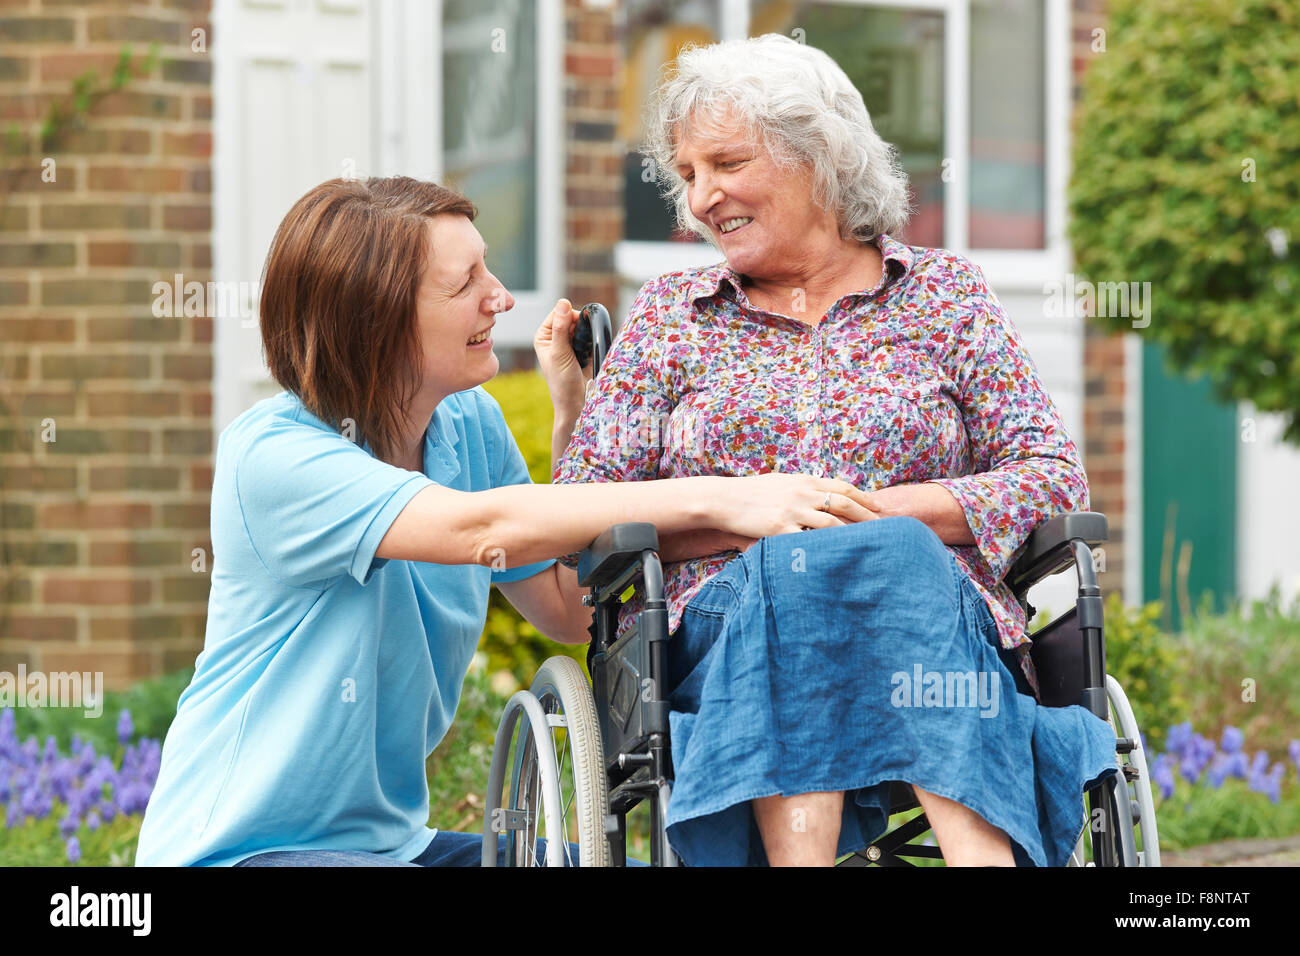 Carer With Senior Woman In Wheelchair - Stock Image